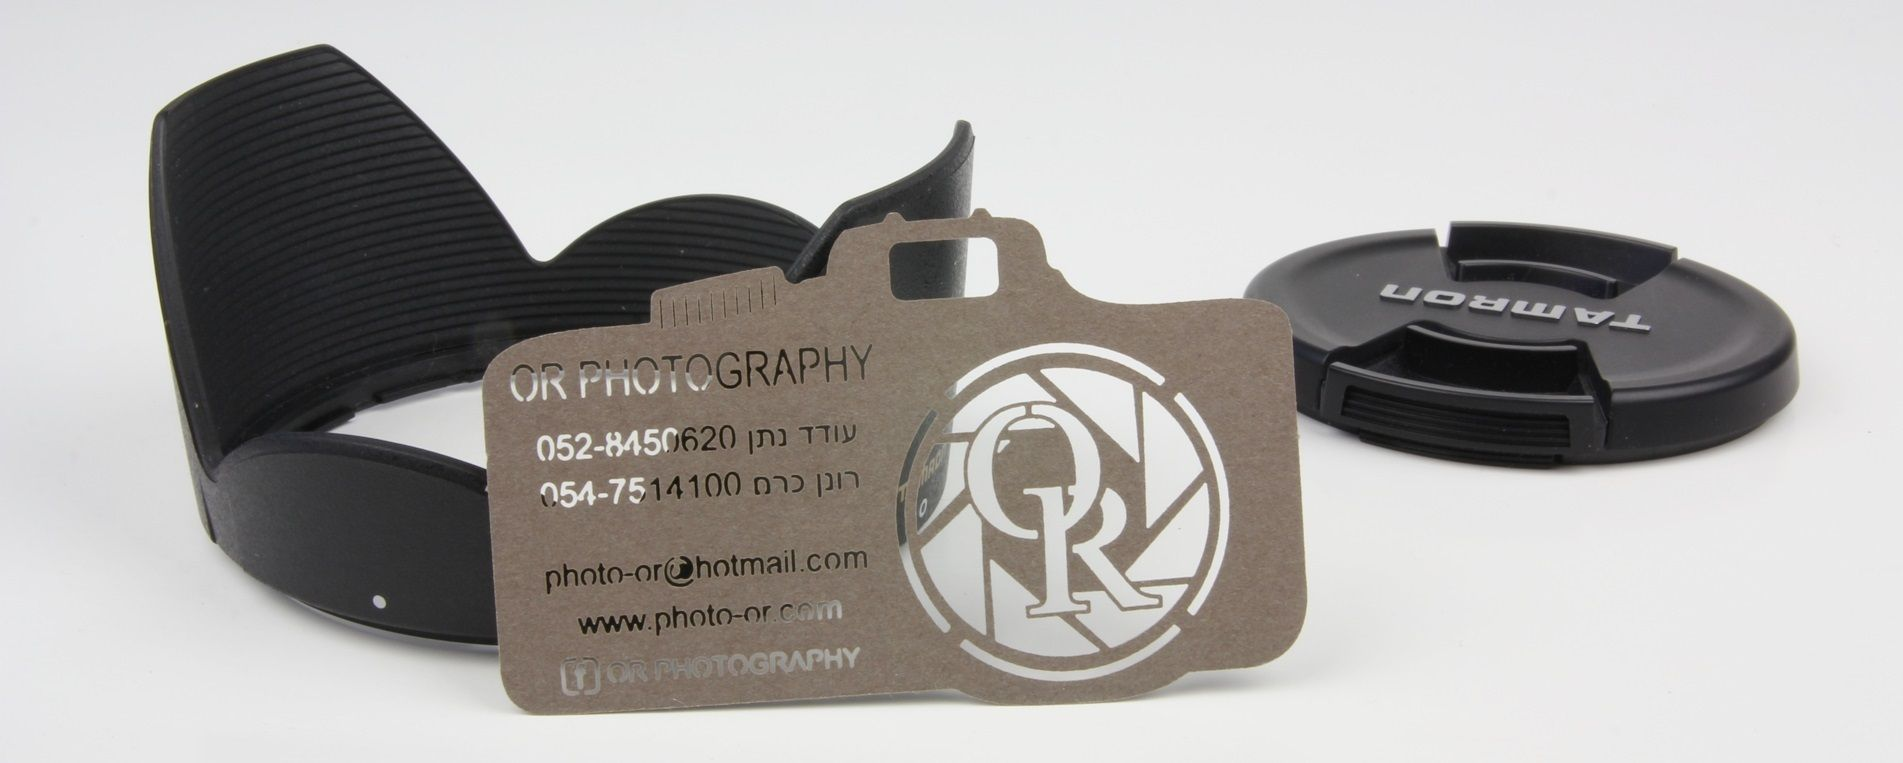 designed personal business card made by laser cutting